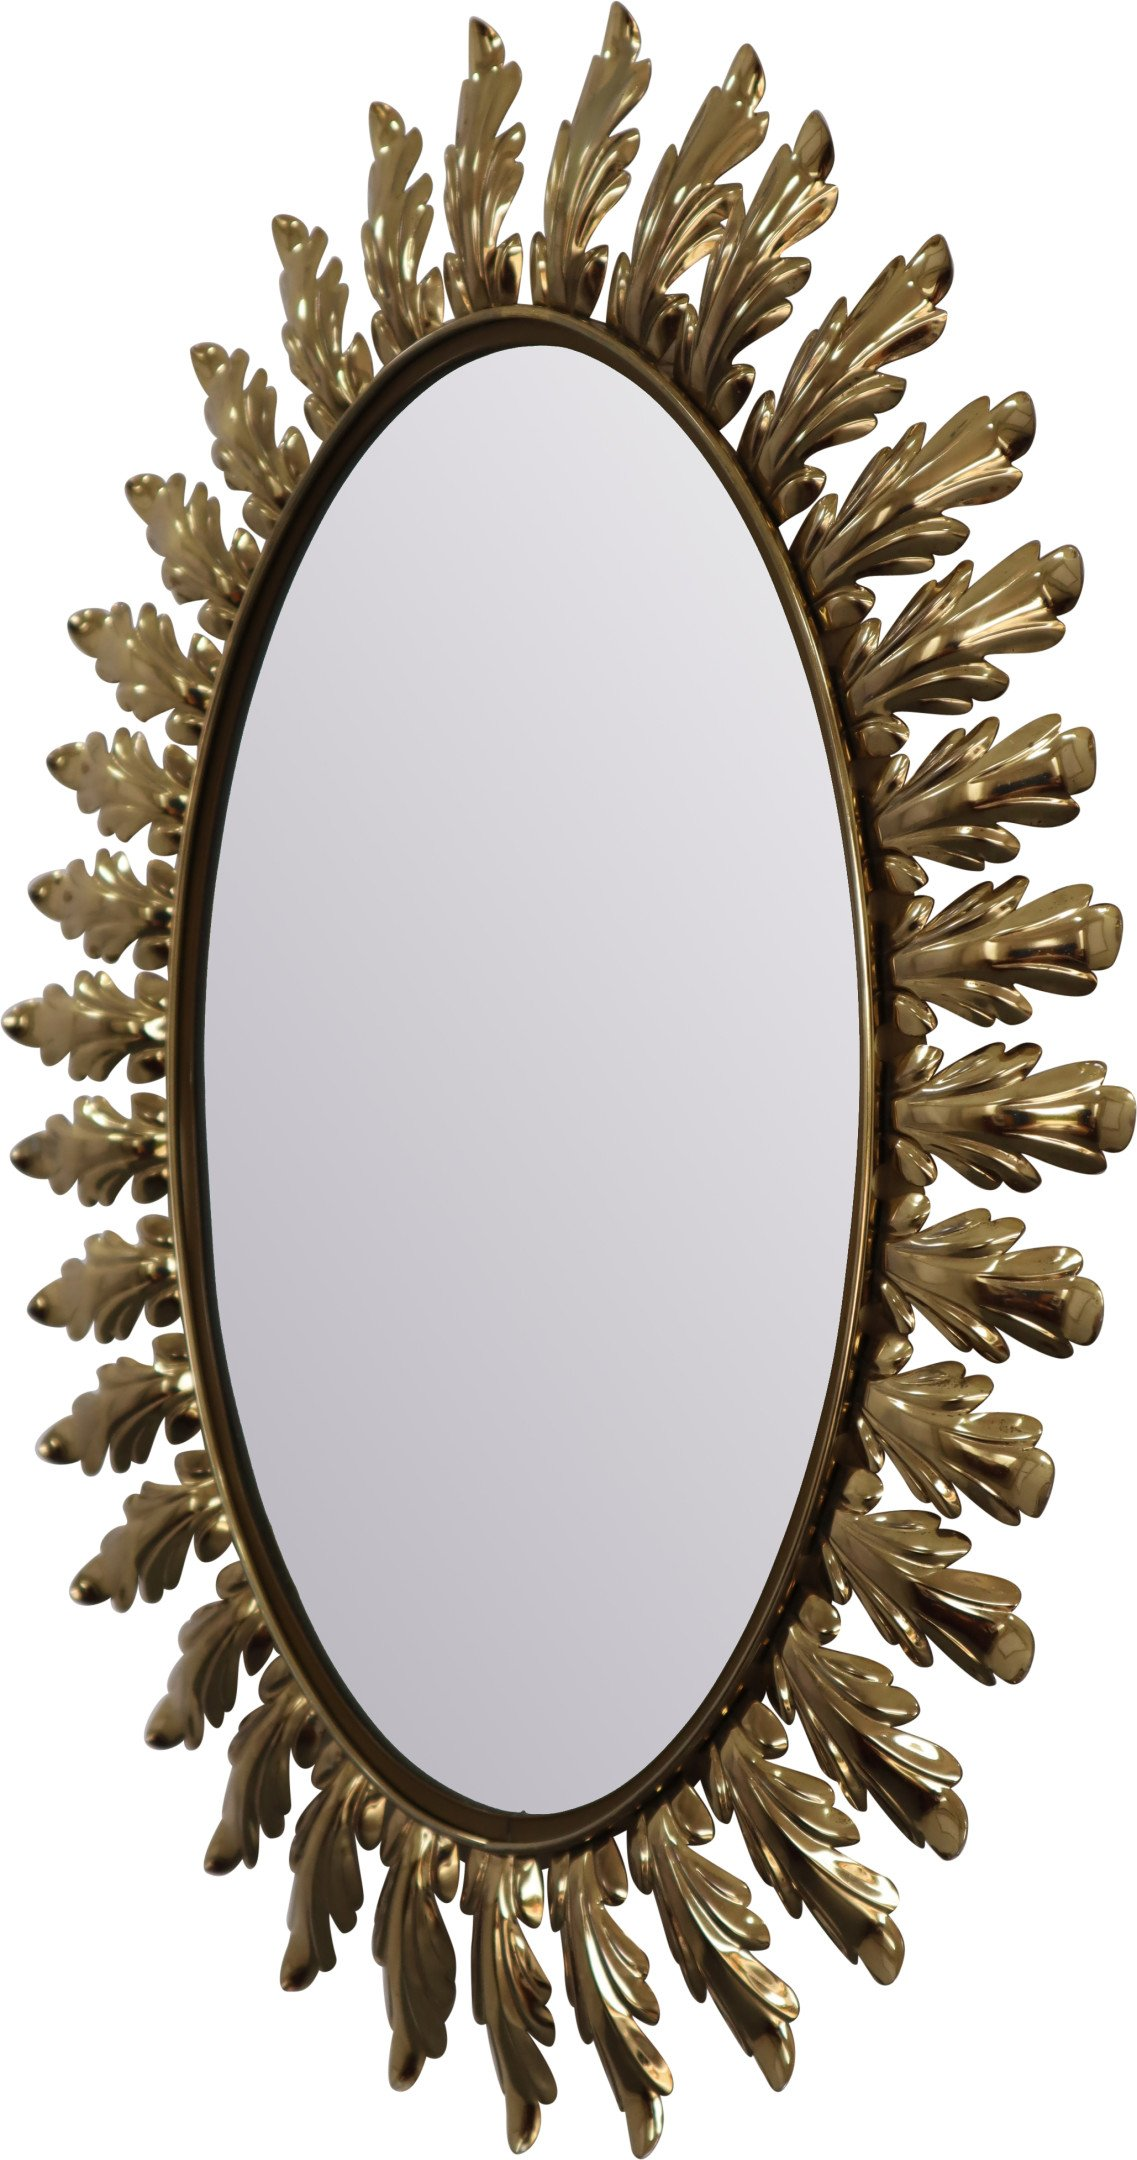 Oval Mirror, 1950s